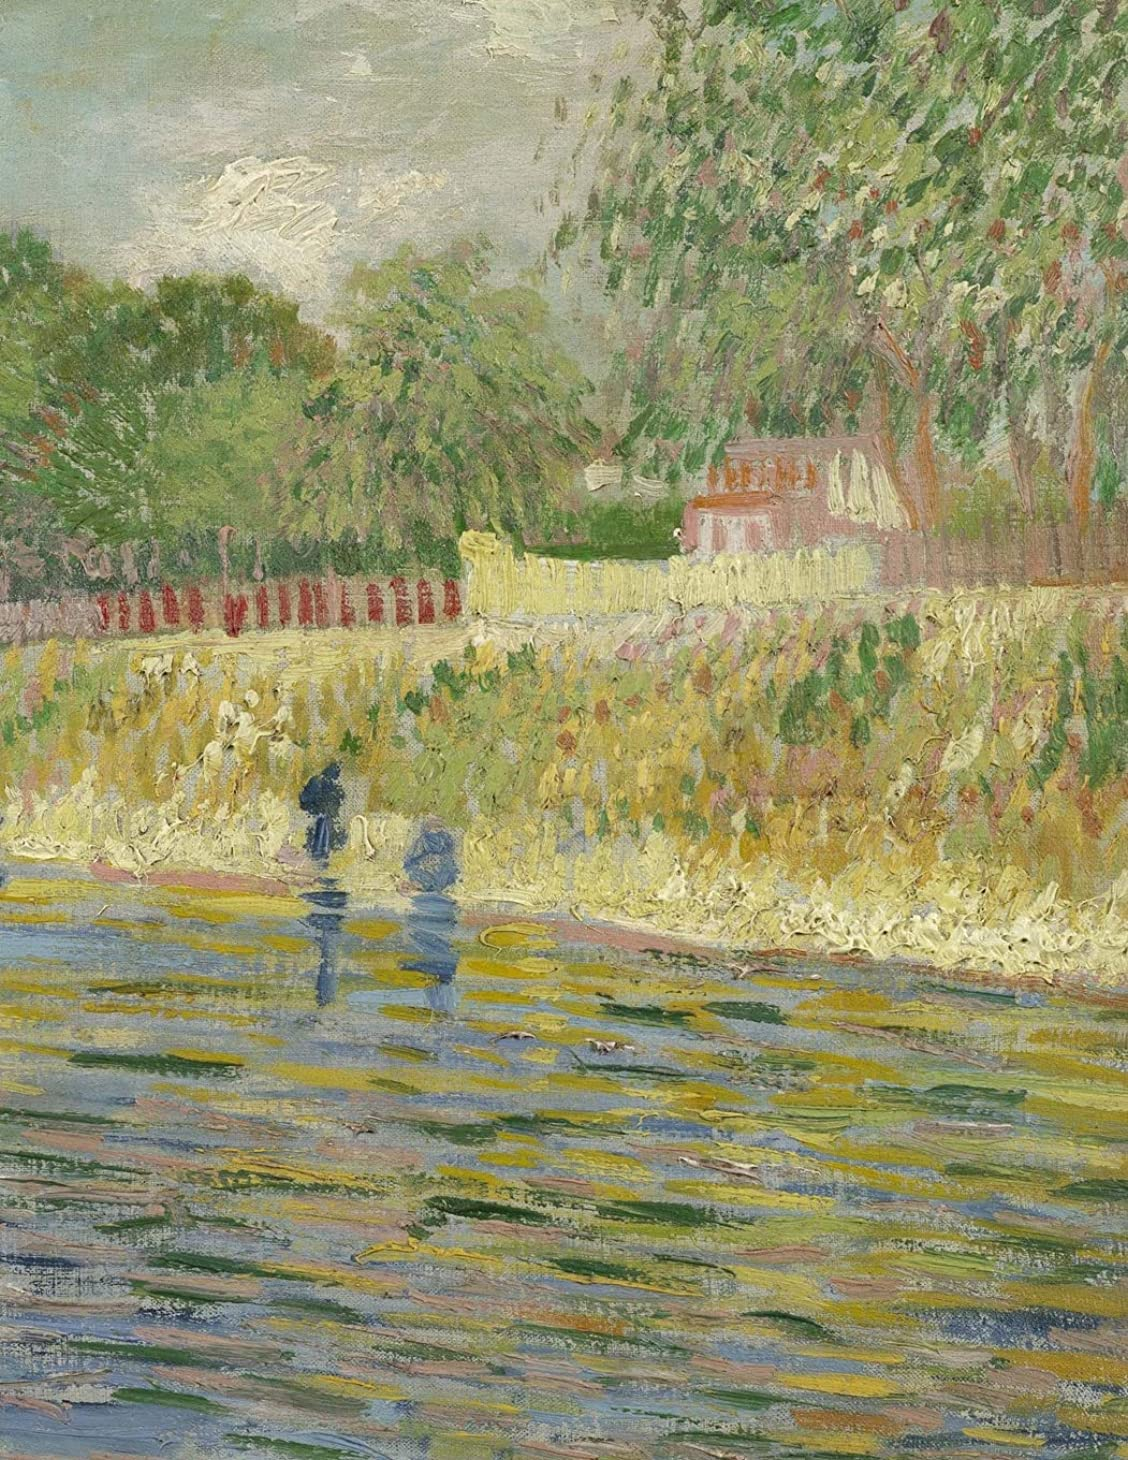 ヒット服を着るスポーツの試合を担当している人Bank of the Seine, Vincent van Gogh. Blank journal: 150 blank pages, 8,5x11 inch (21.59 x 27.94 cm) Soft cover